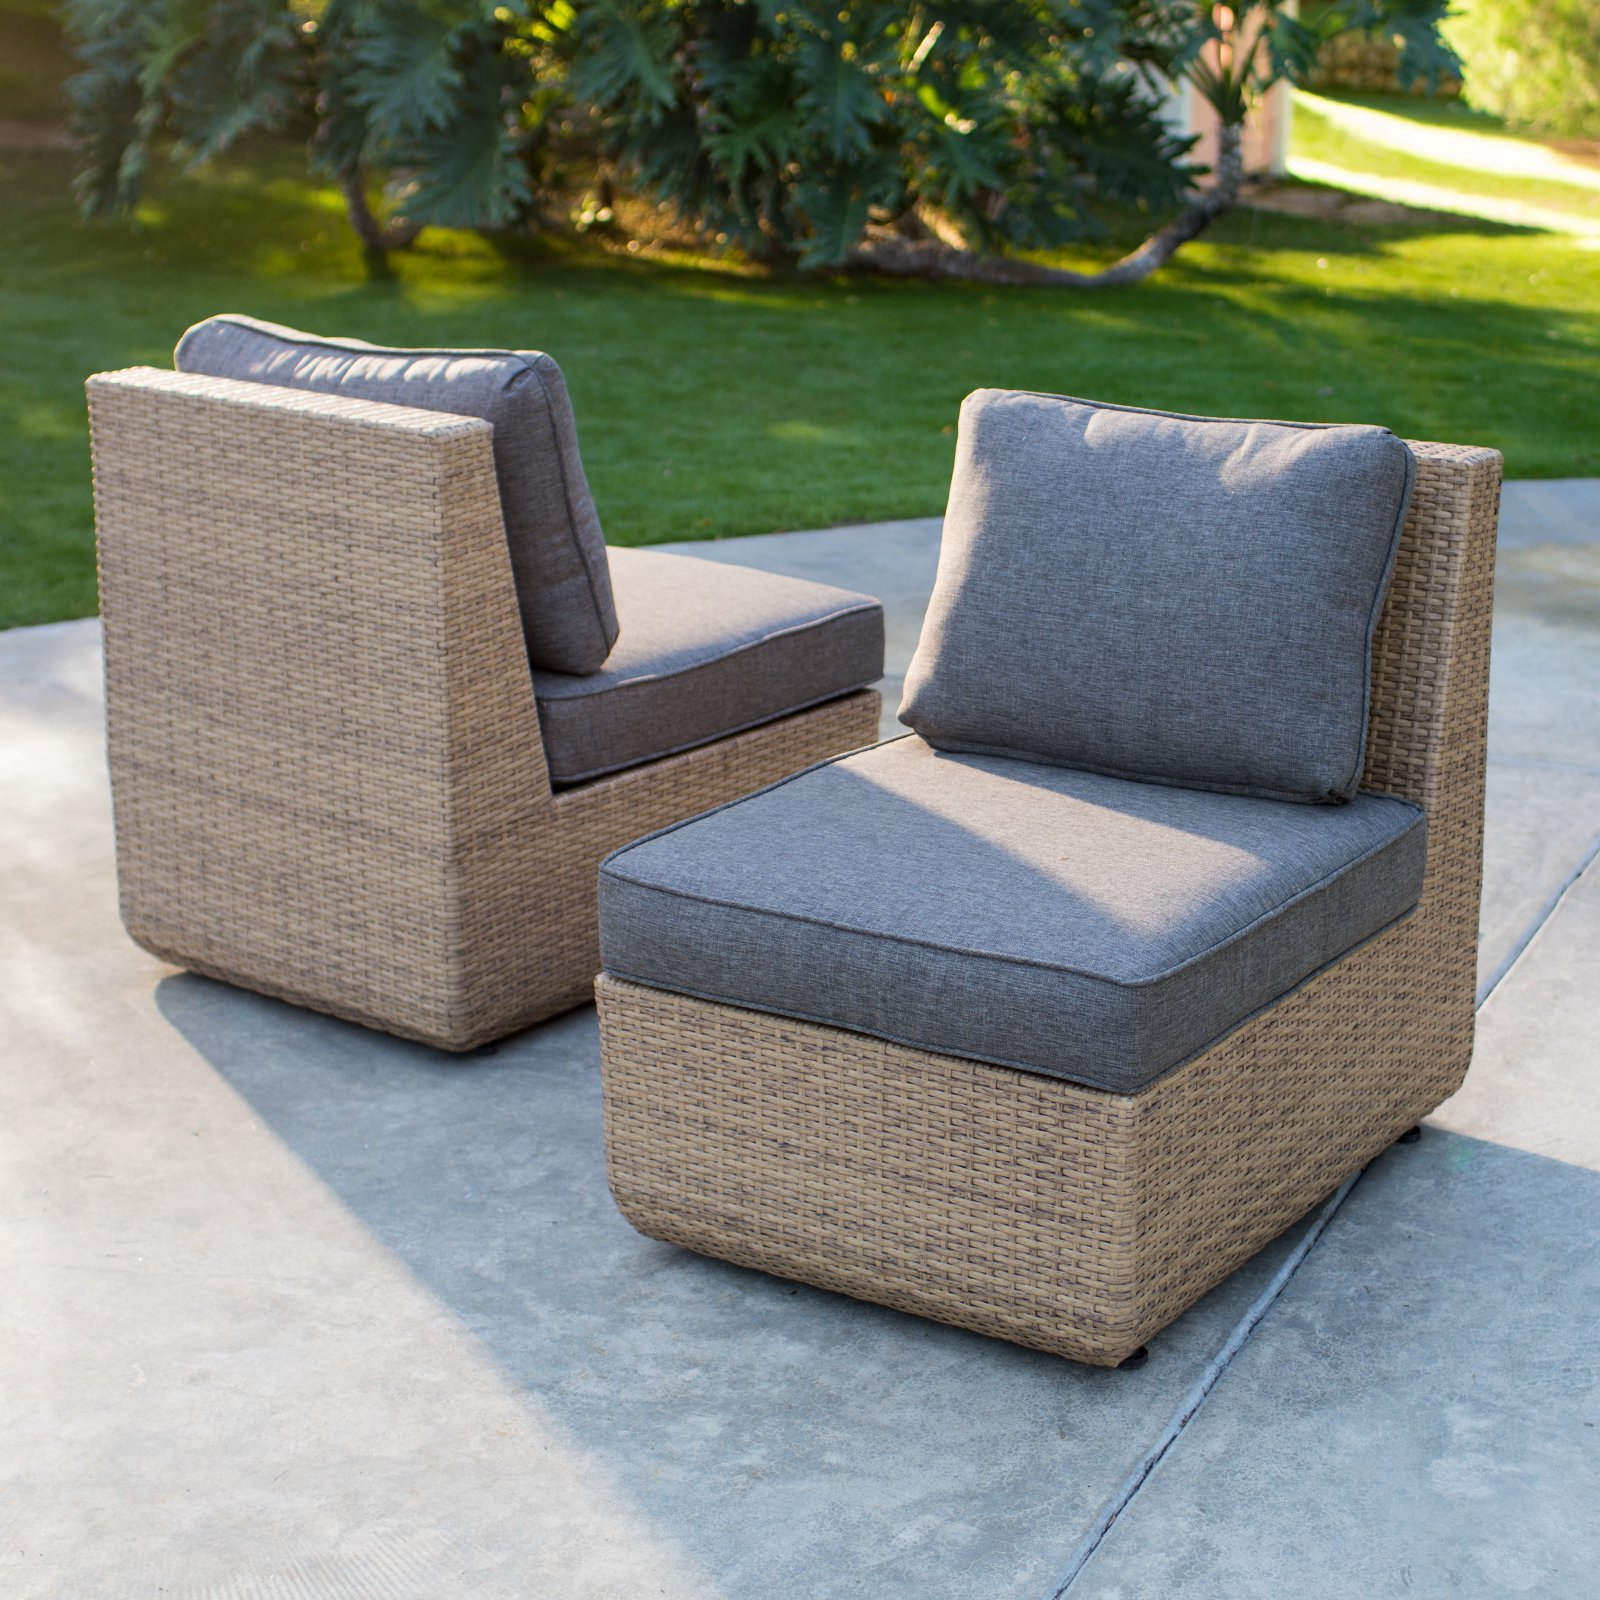 Outside Lounge Chairs Belham Living Luciana Villa All Weather Wicker Lounge Chair Set Of 2